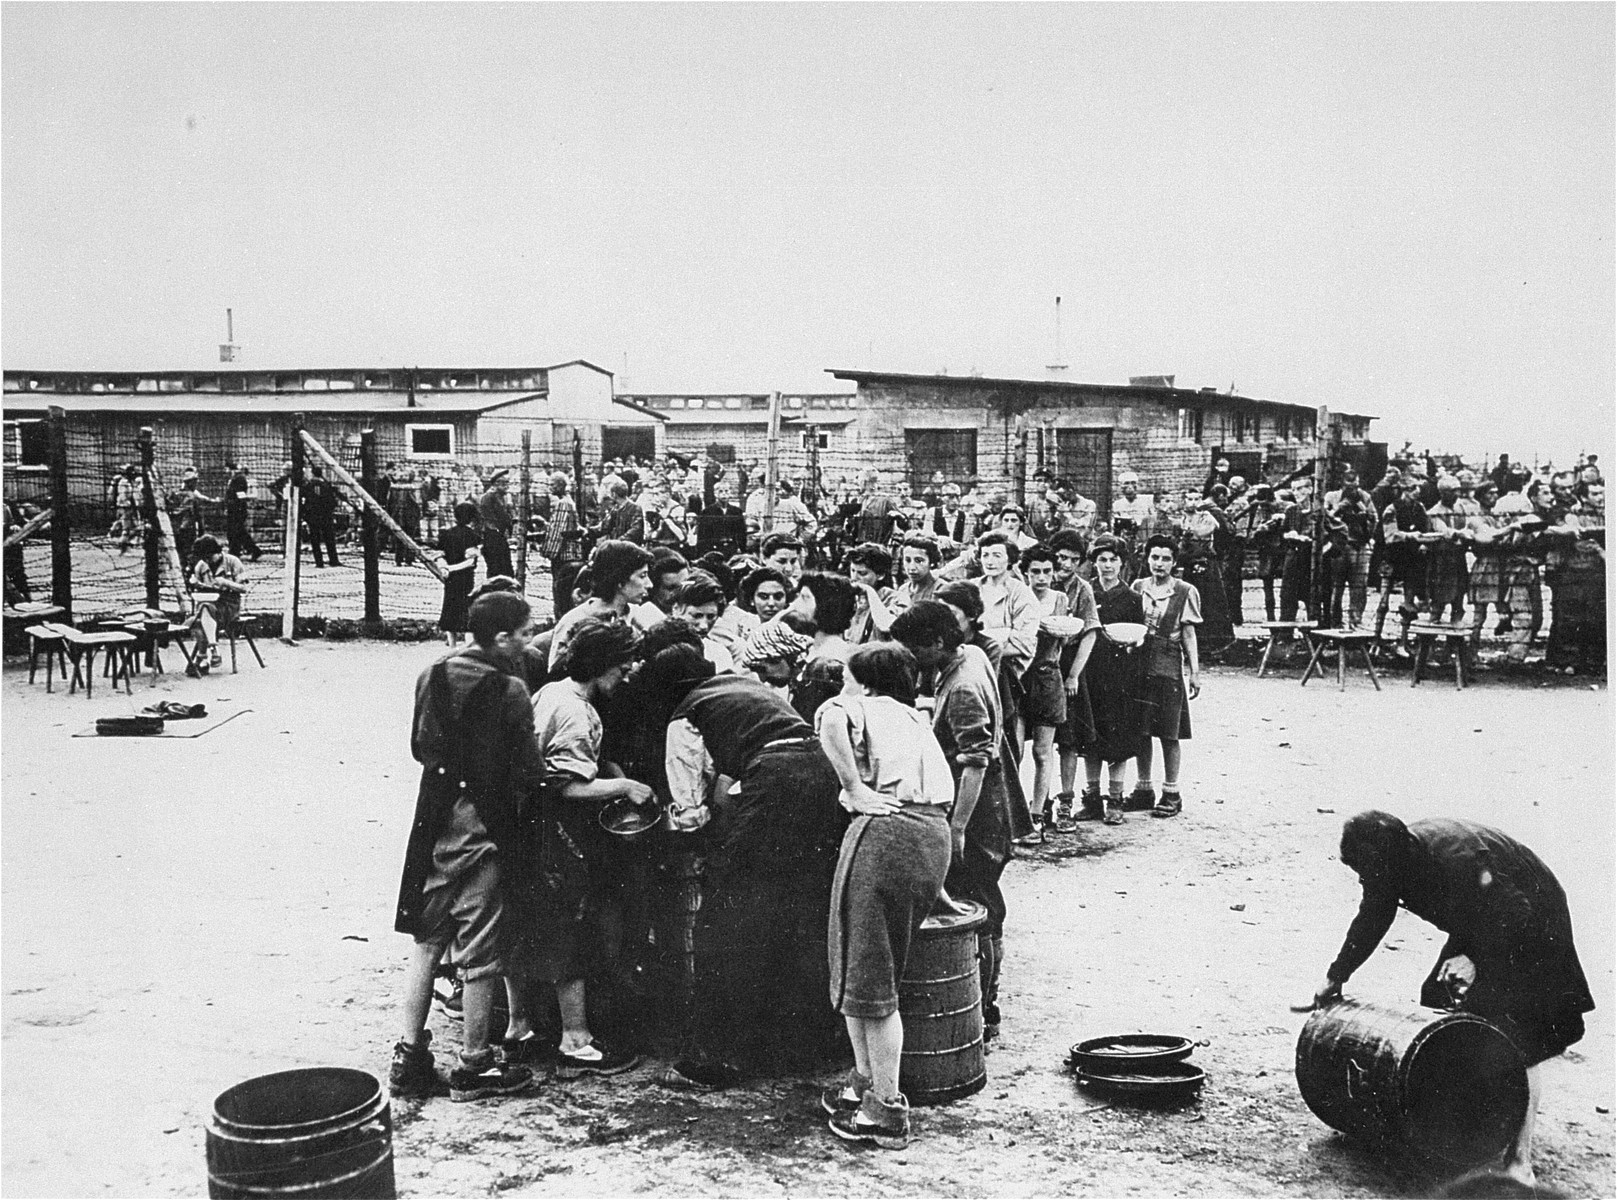 In the women's camp at Mauthausen, survivors queue up for soup.